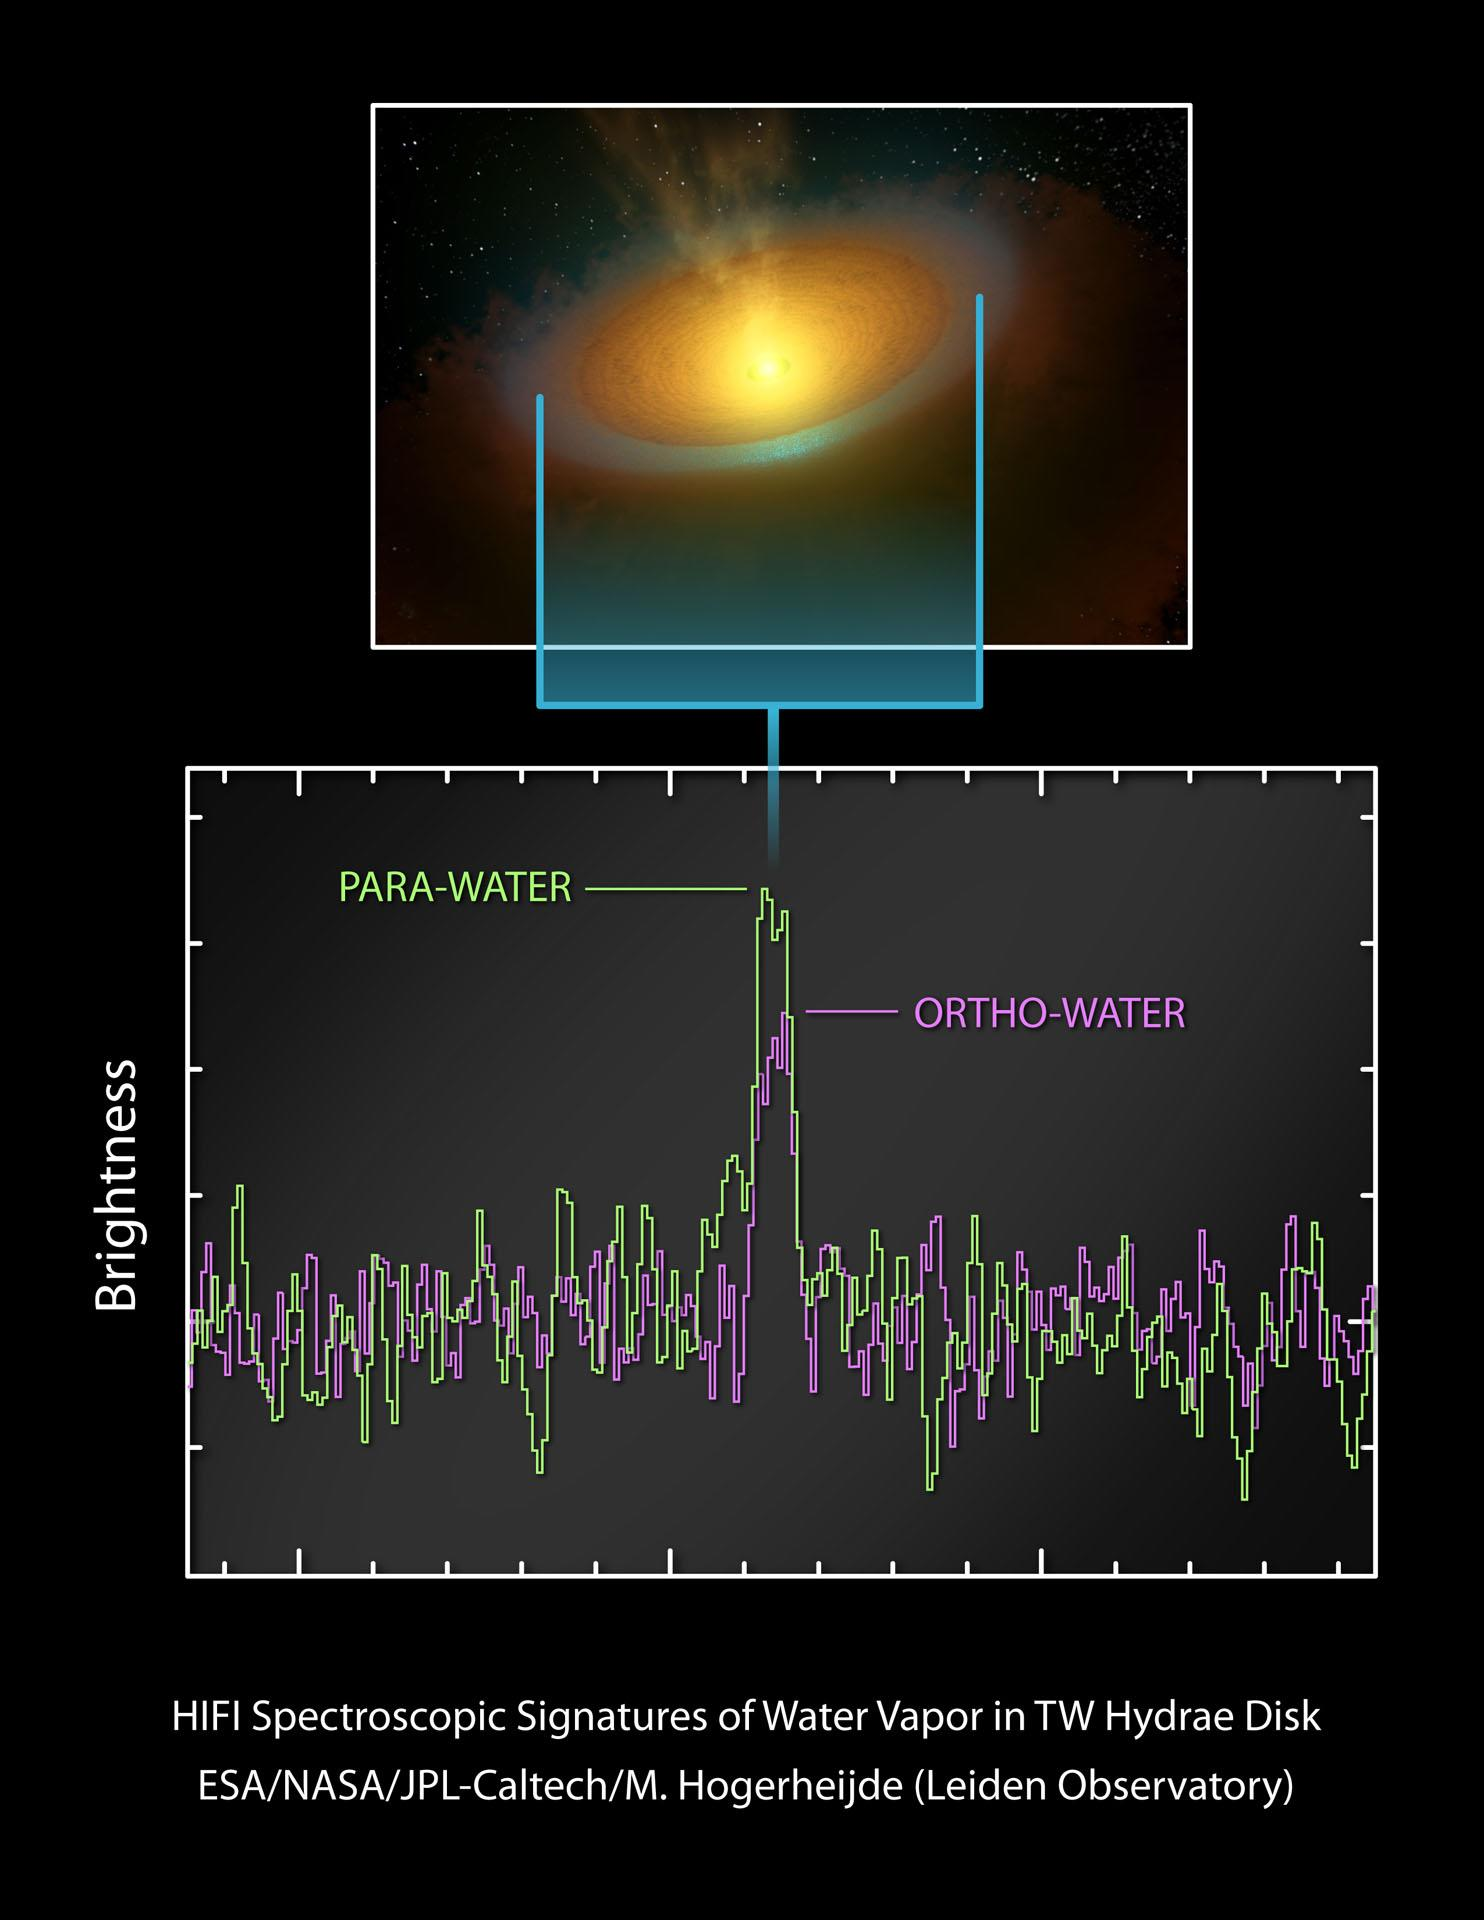 Artist's impression and spectrum of the TW Hydrae protoplanetary disc. Copyright: ESA/NASA/JPL-Caltech/M. Hogerheijde (Leiden Observatory)